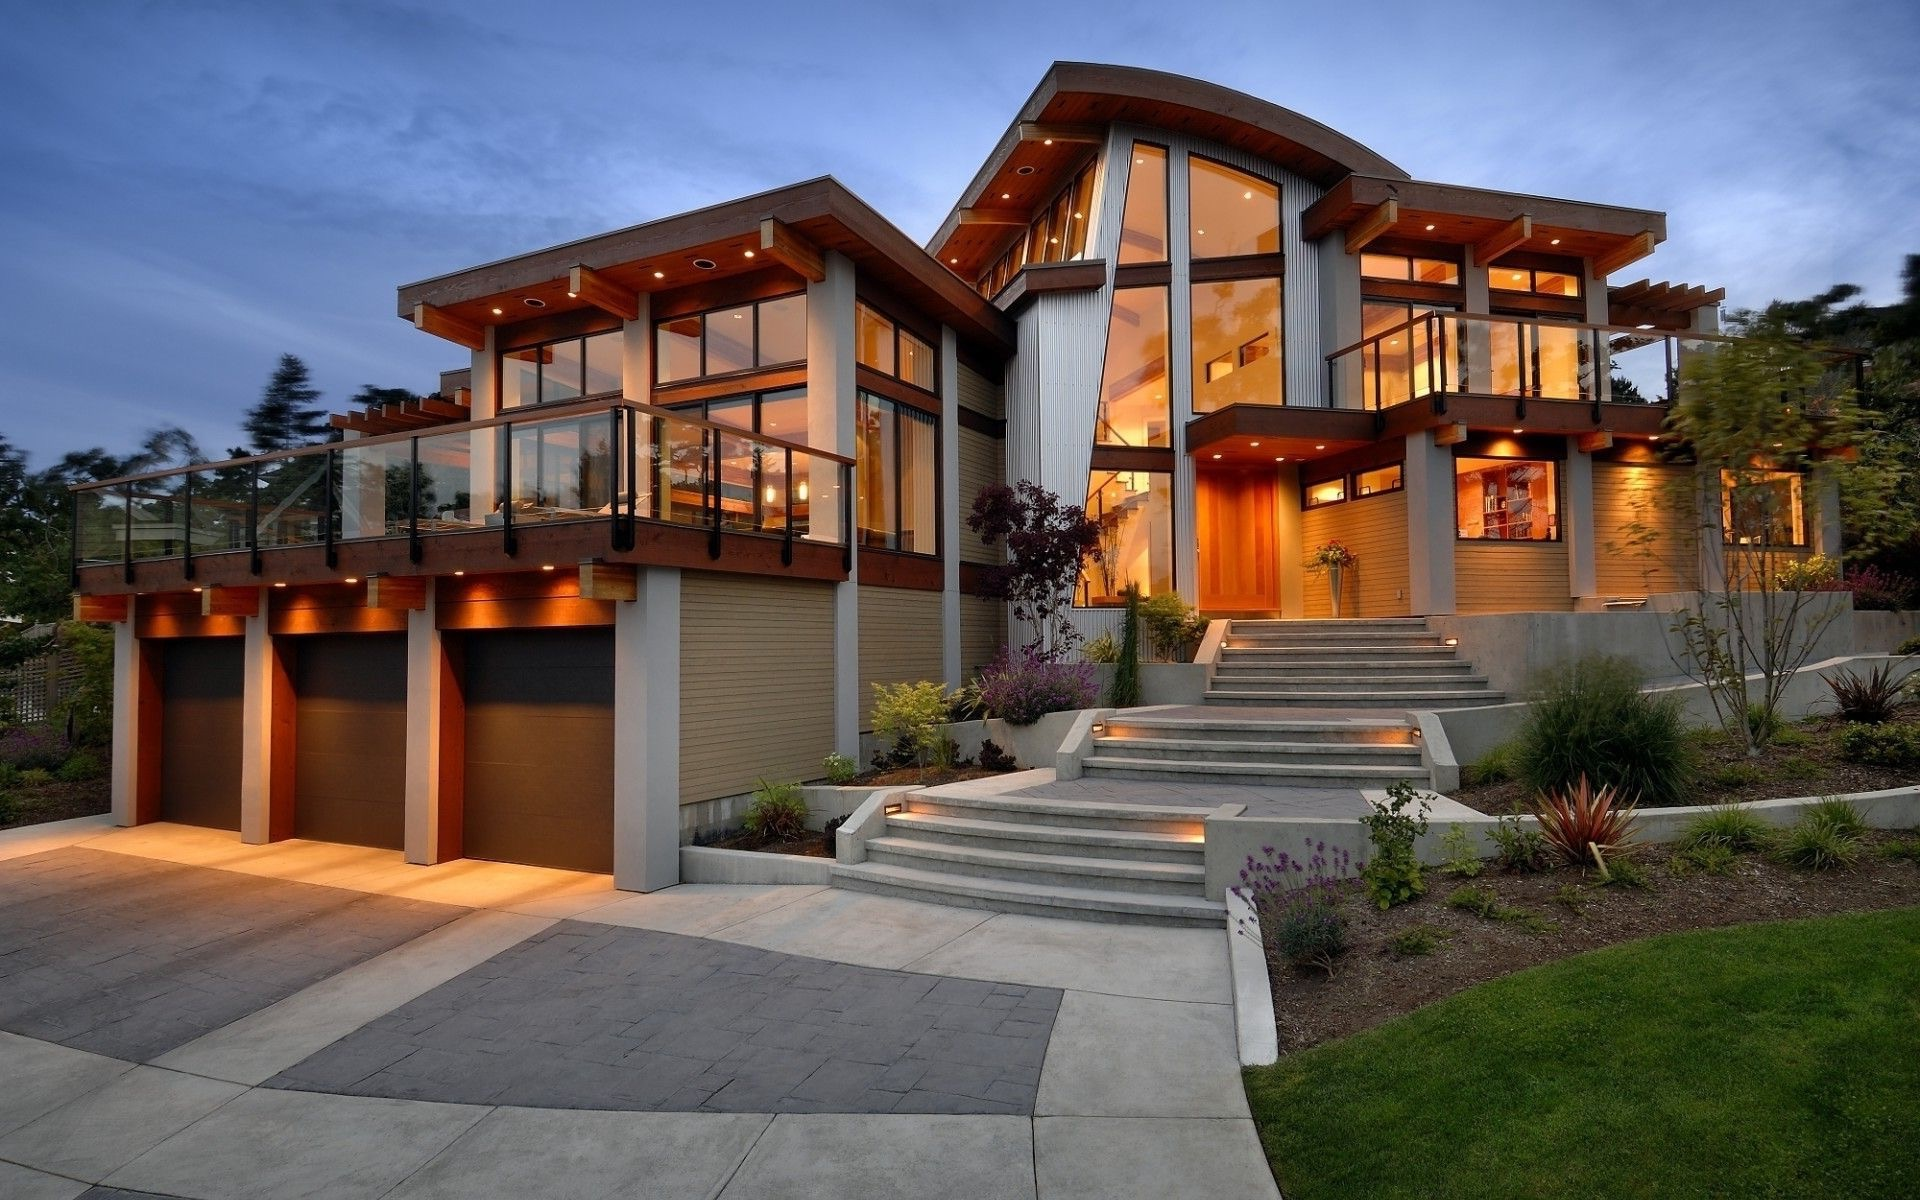 Architecture Luxury Modern House With Large Glass Windows (Image 1 of 27)